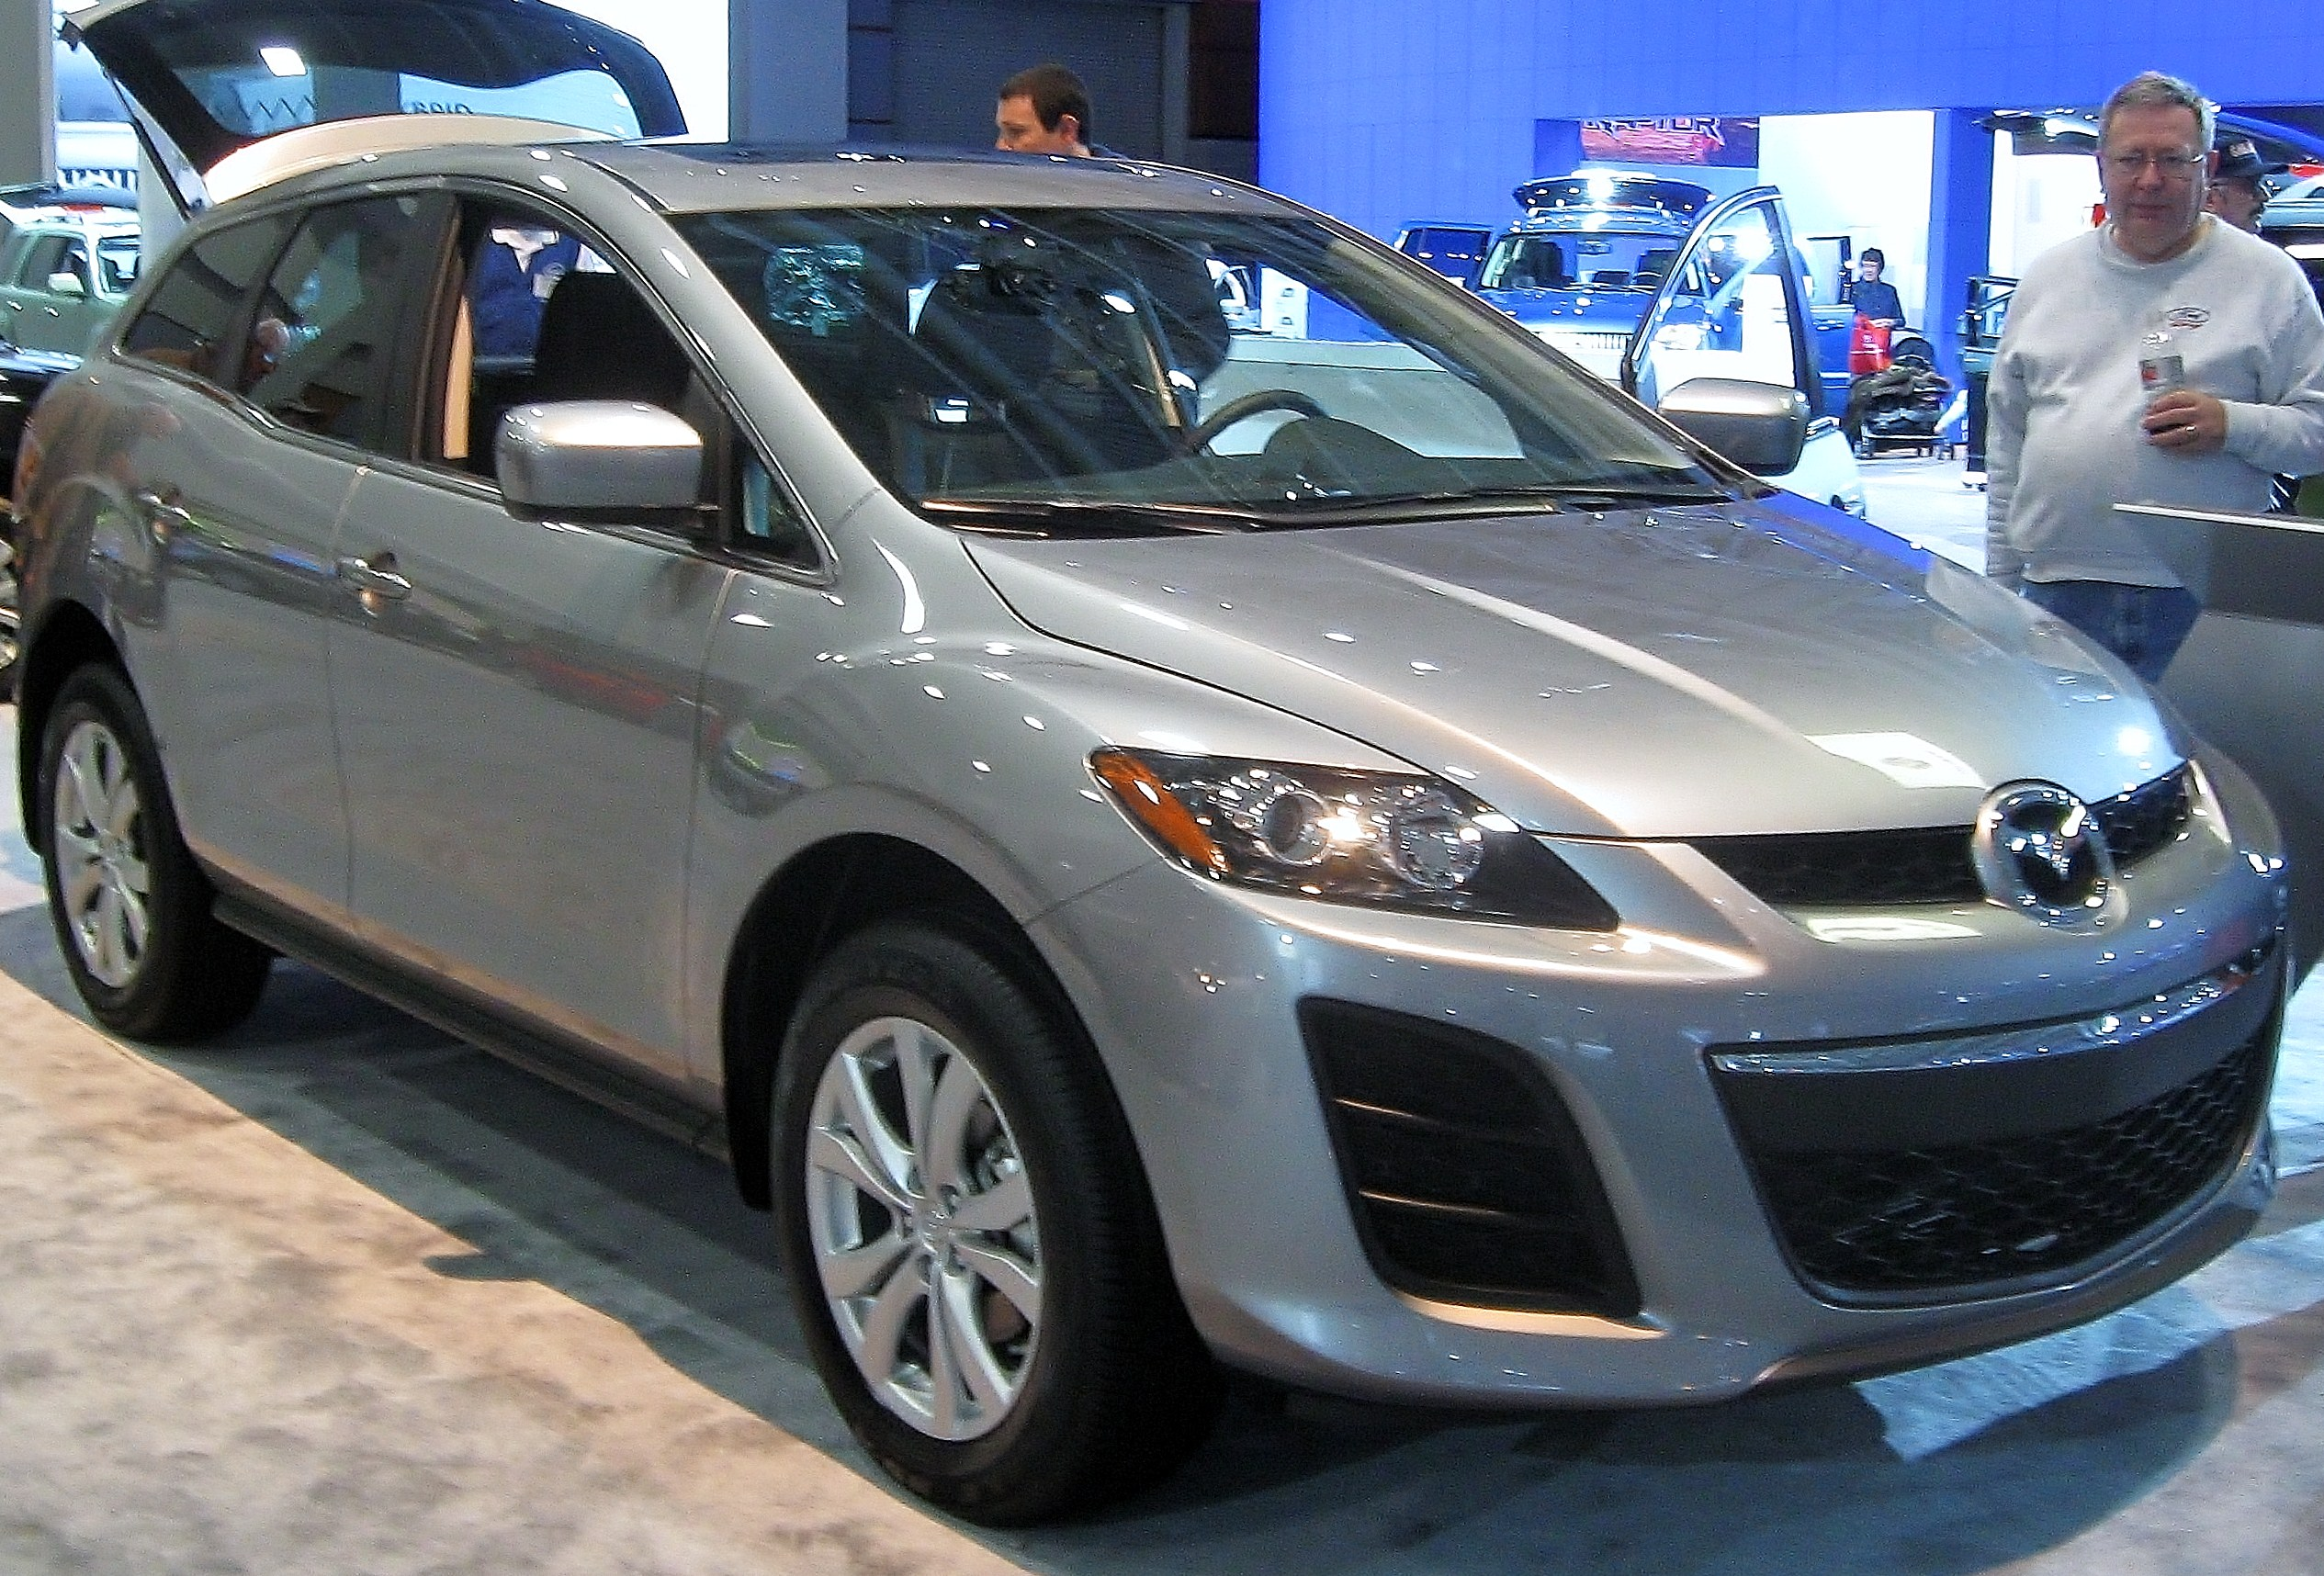 file 2010 mazda cx 7 2010 wikimedia commons. Black Bedroom Furniture Sets. Home Design Ideas